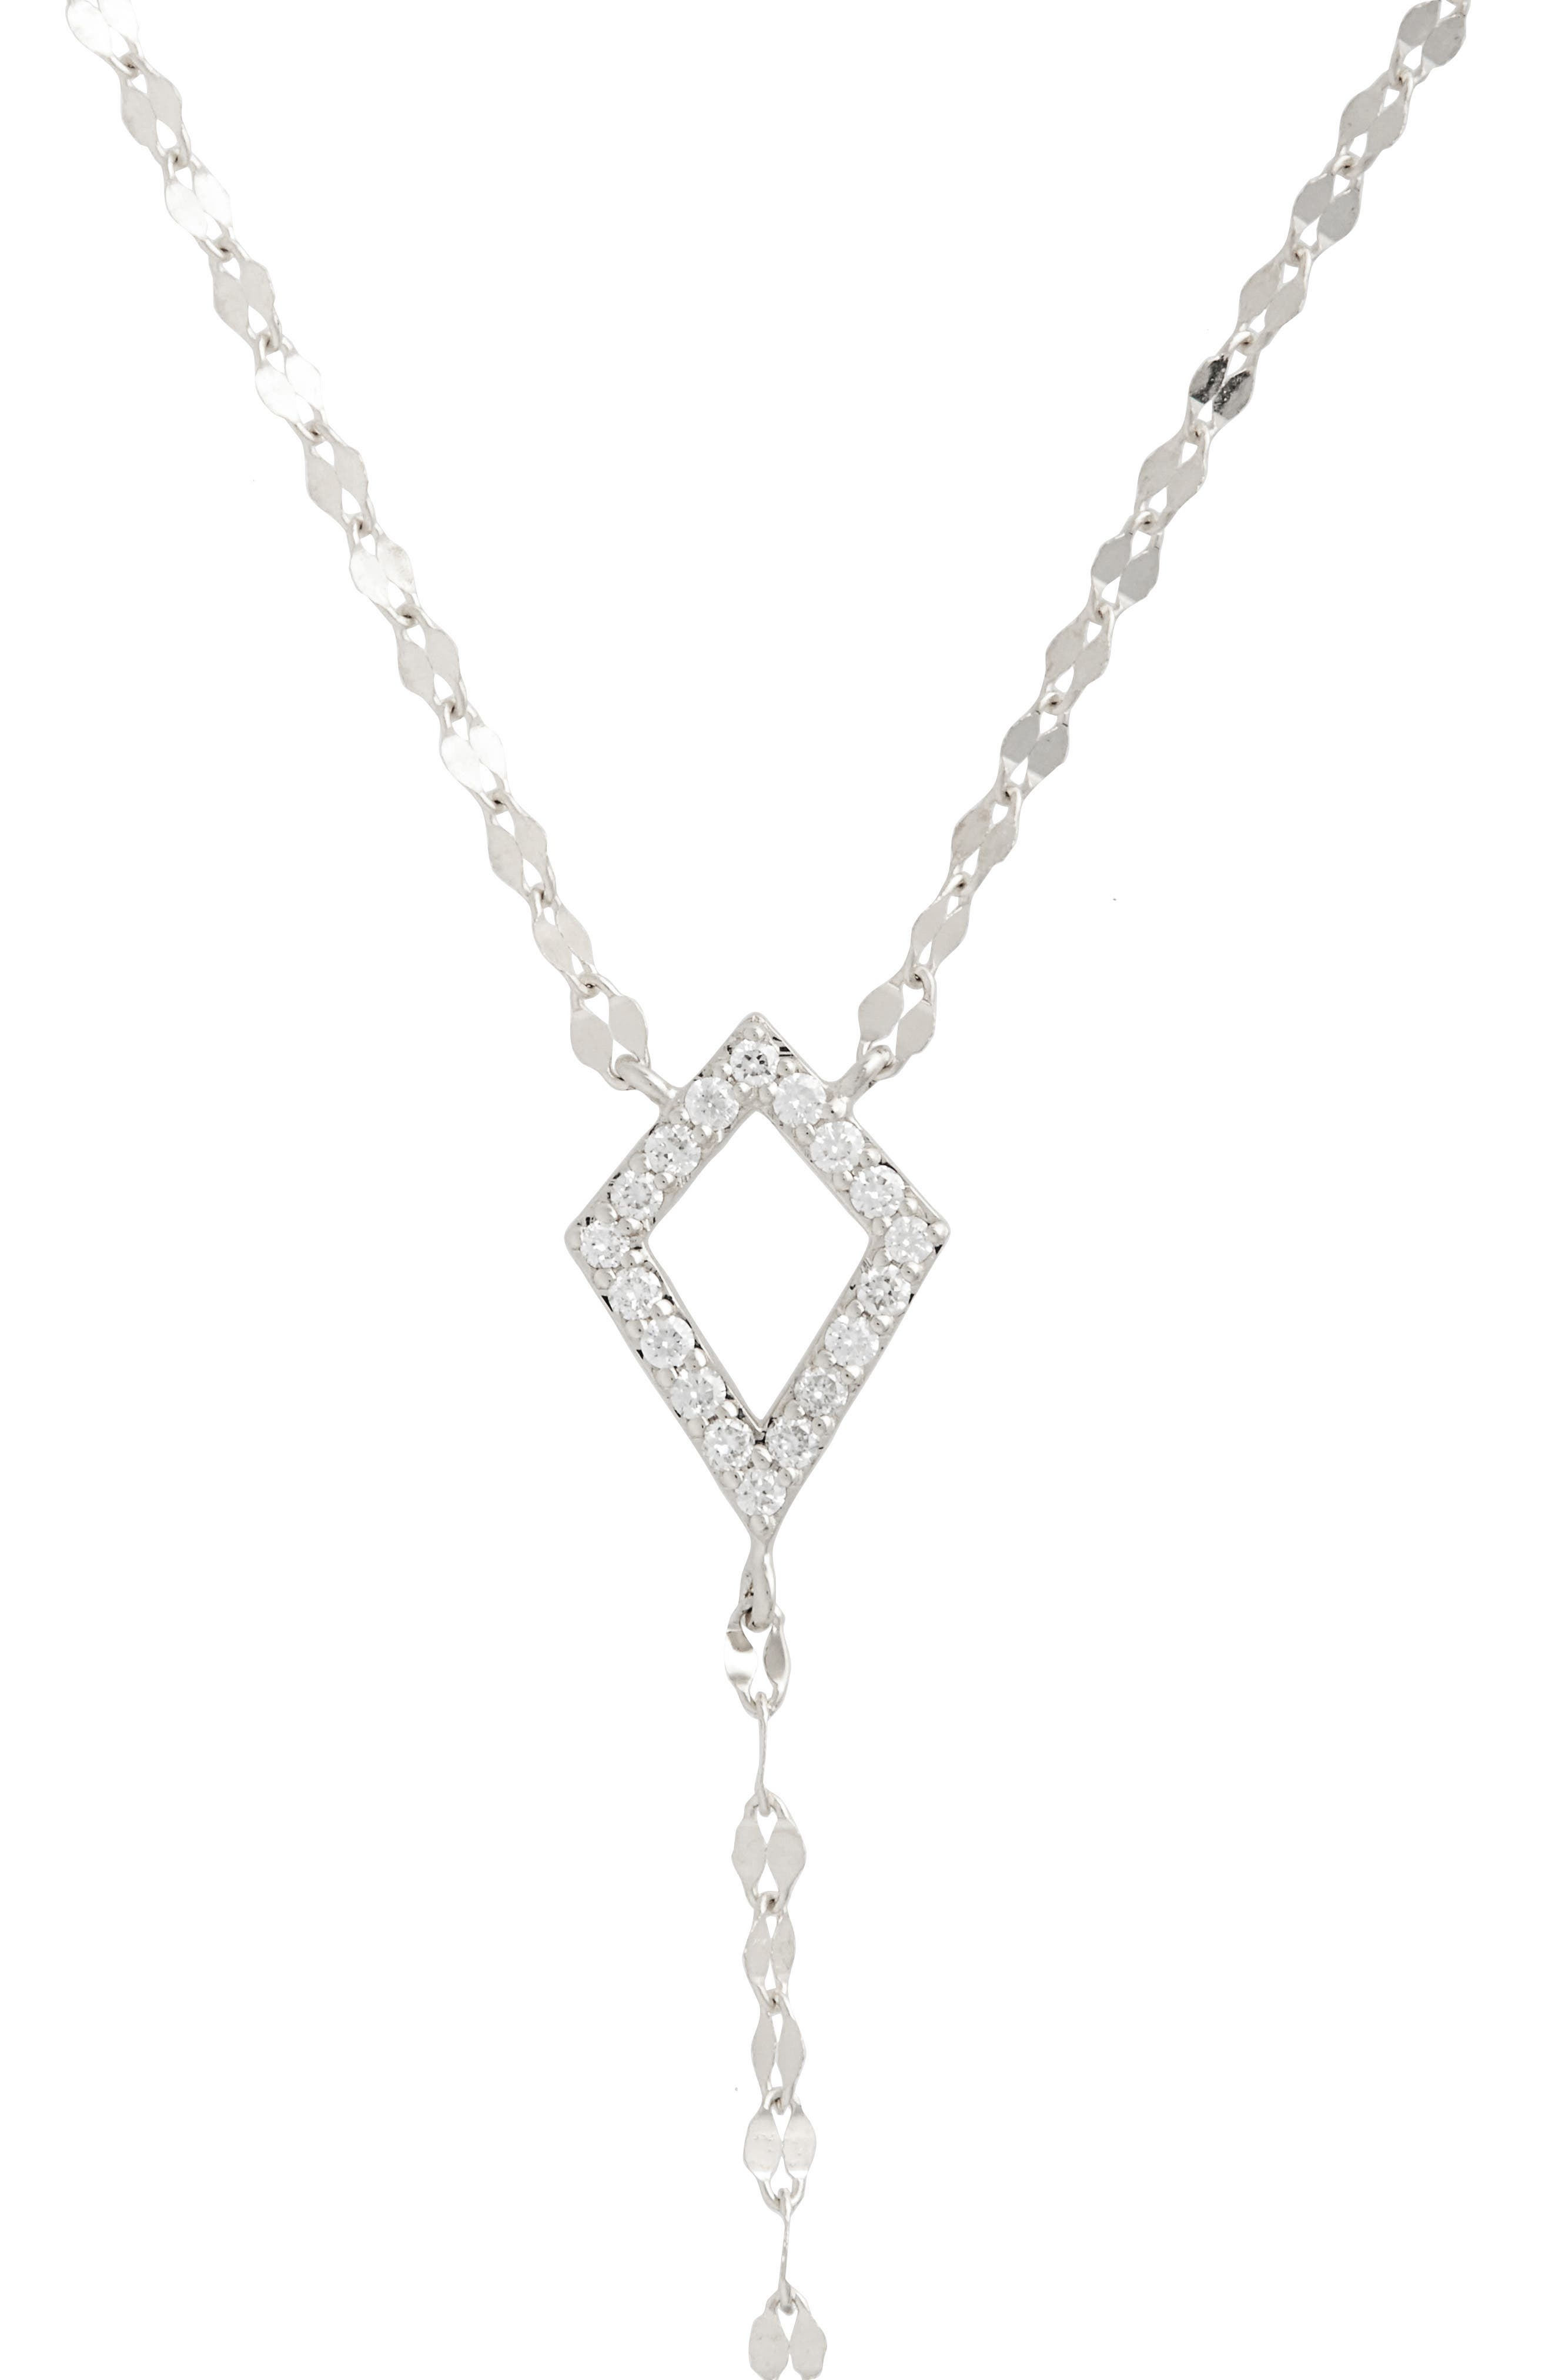 Flawless Diamond Kite Y-Necklace,                             Alternate thumbnail 2, color,                             White Gold